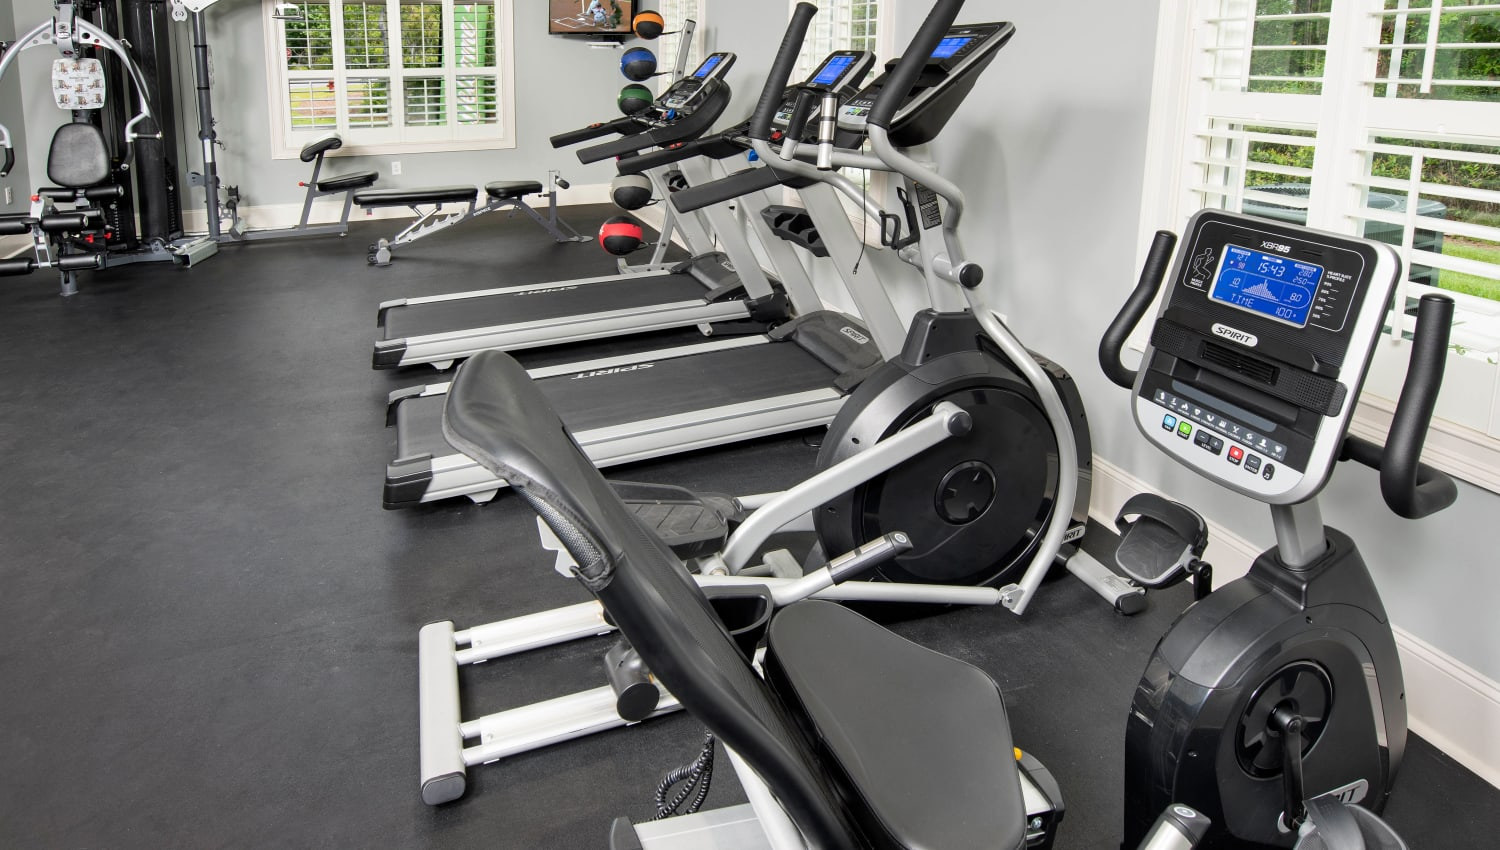 Wide variety of exercise equipment in the fitness center at The Enclave in Brunswick, Georgia